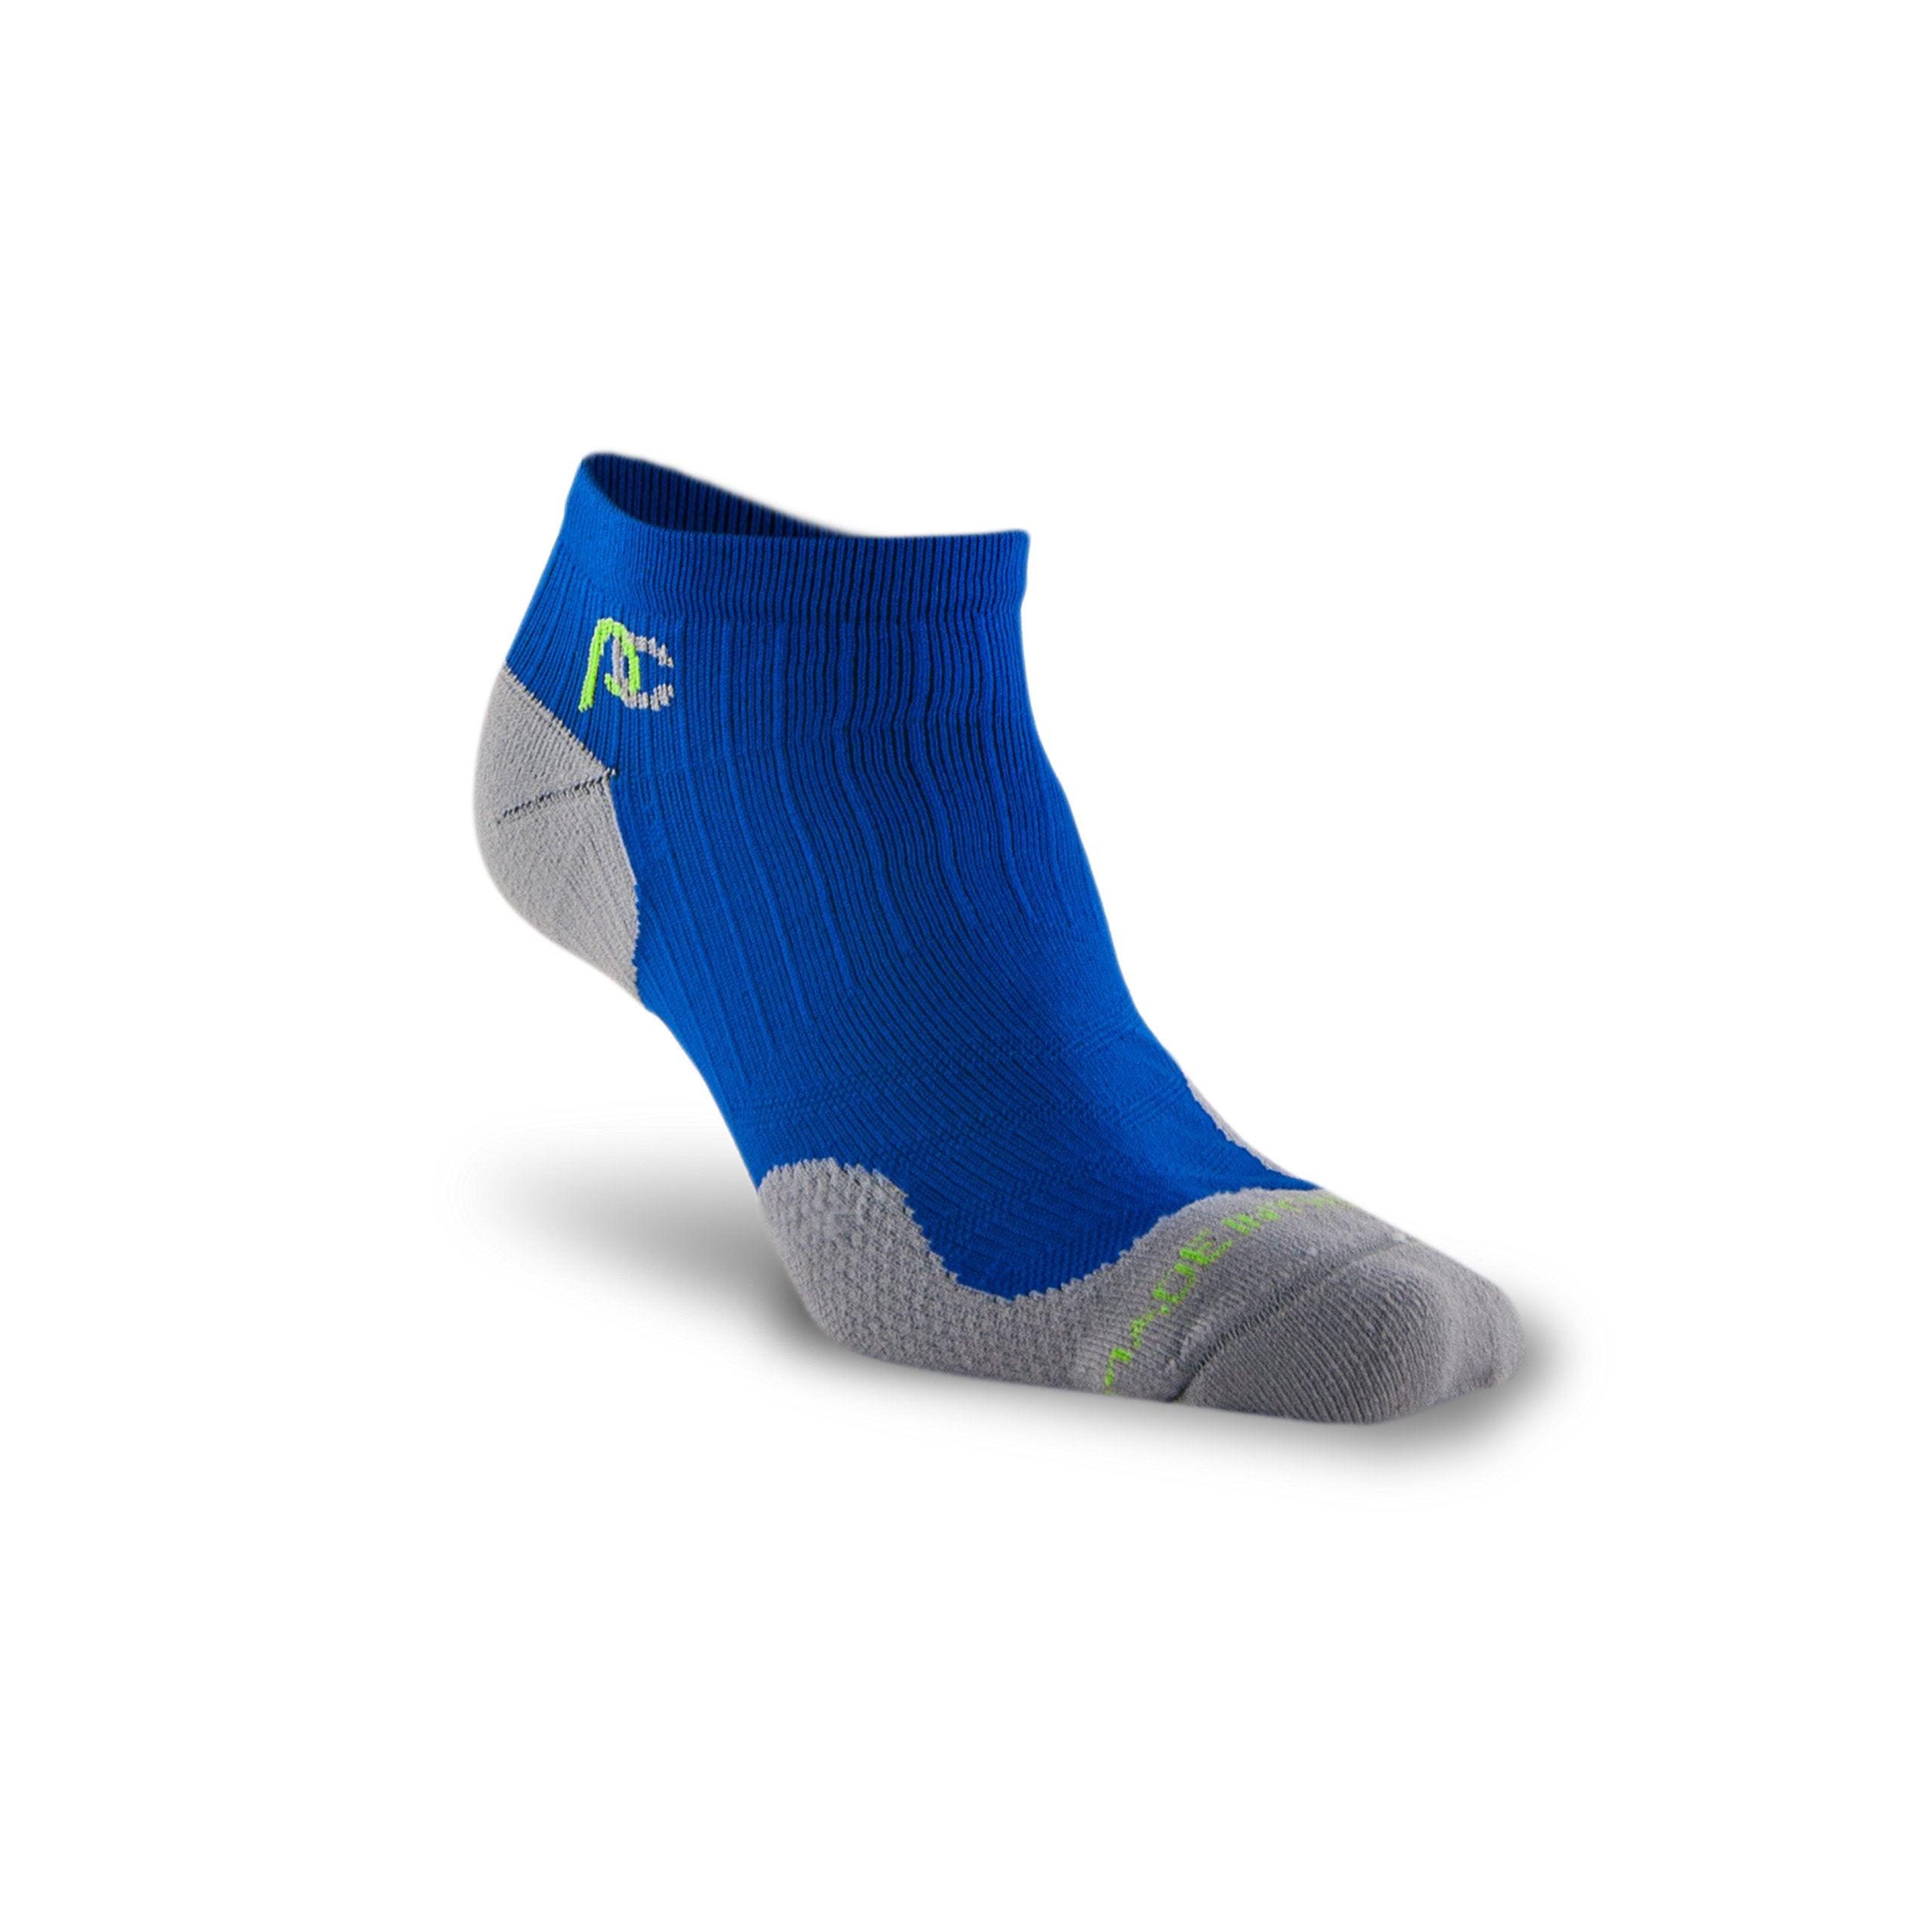 PRO Compression: Trainer (Low-Profile) Compression Socks, Royal Blue, 2 Pairs, Large/X-Large